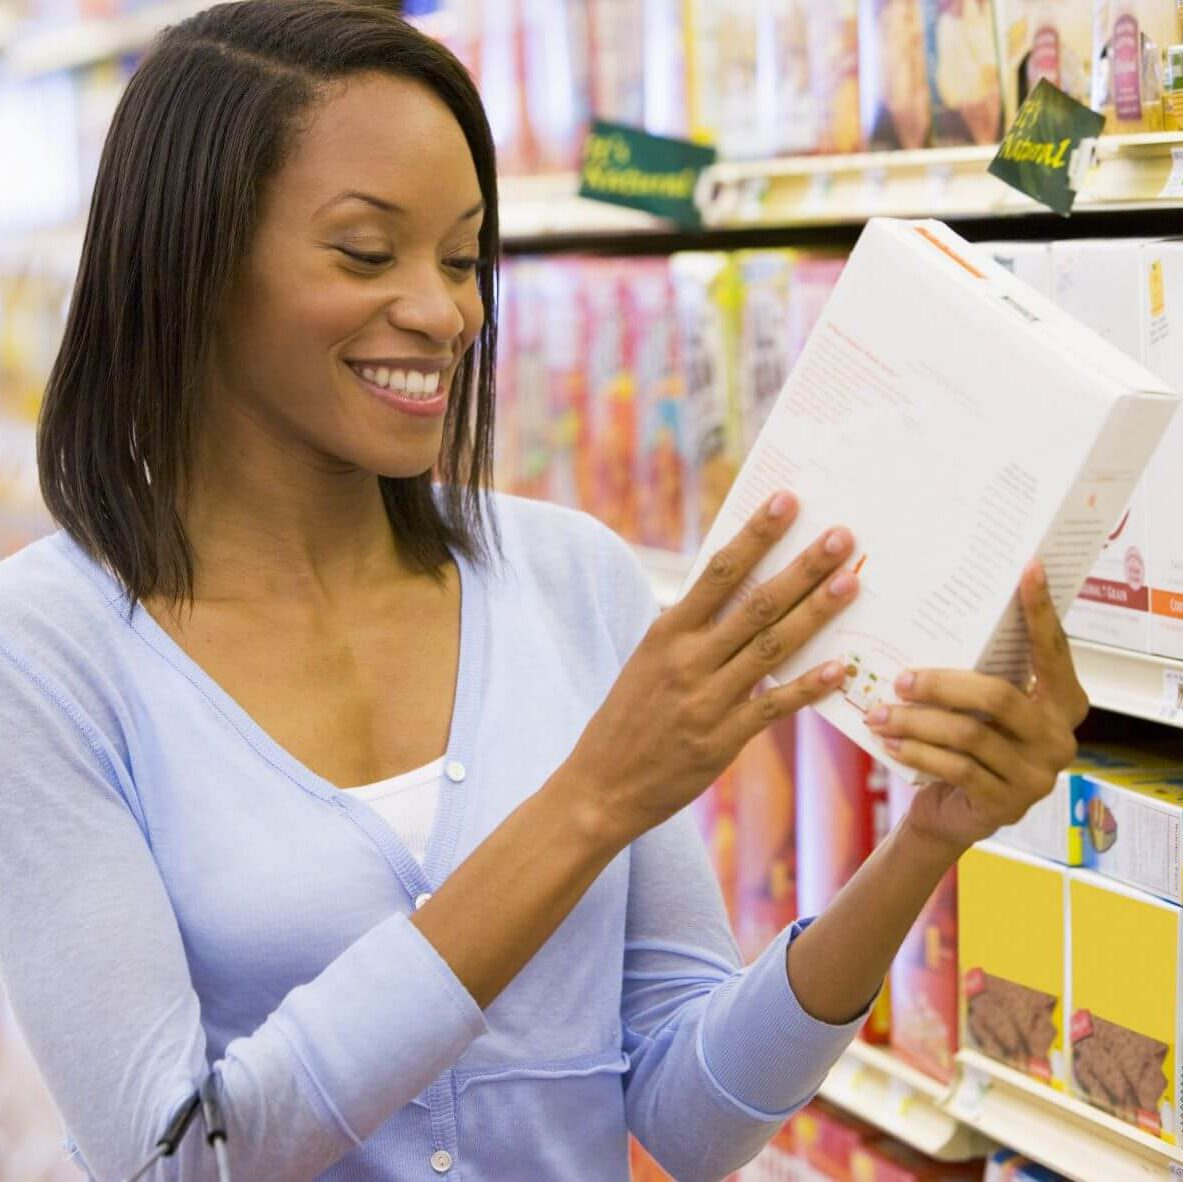 Paper-Based Packaging Is Preferred By Consumers